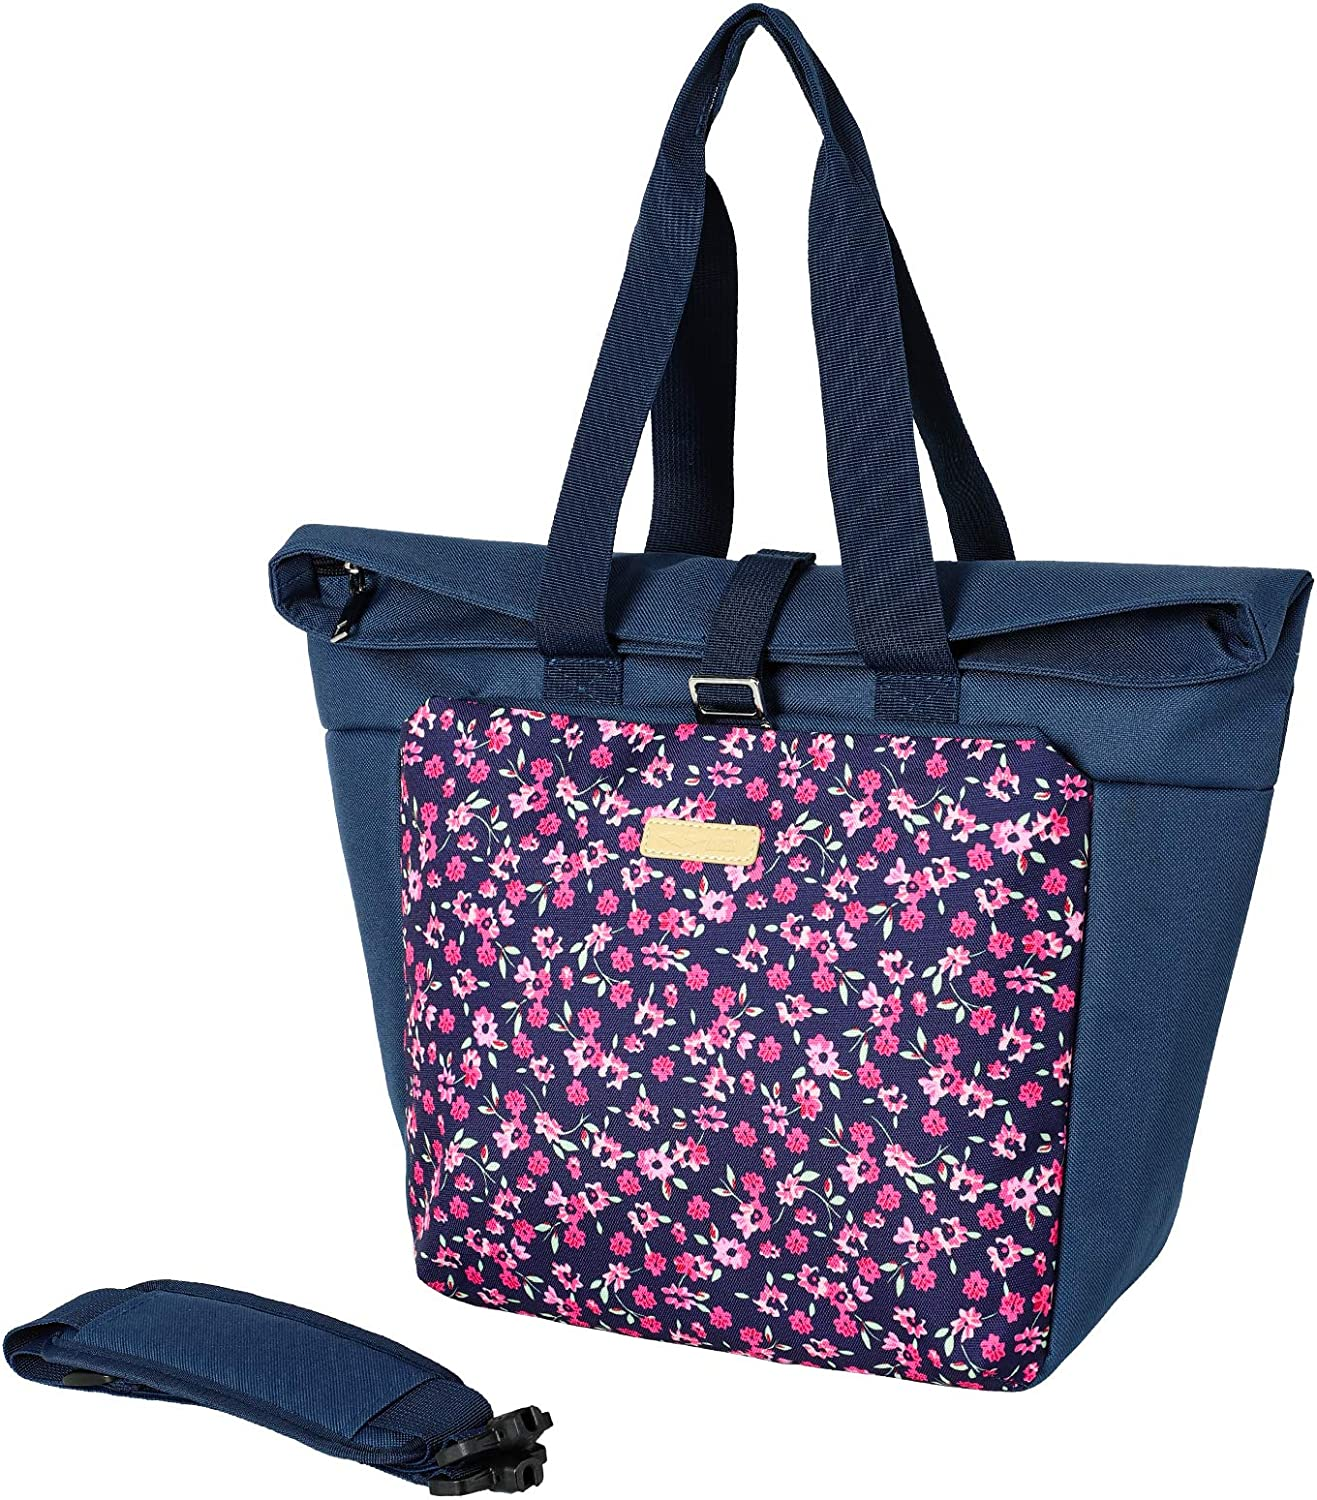 MIER Adult Cute Lunch Bag Tote with Shoulder Strap Insulated Leakproof Large Soft Cooler Bag for Work, Grocery Shopping, Picnic, Beach, Crabapple